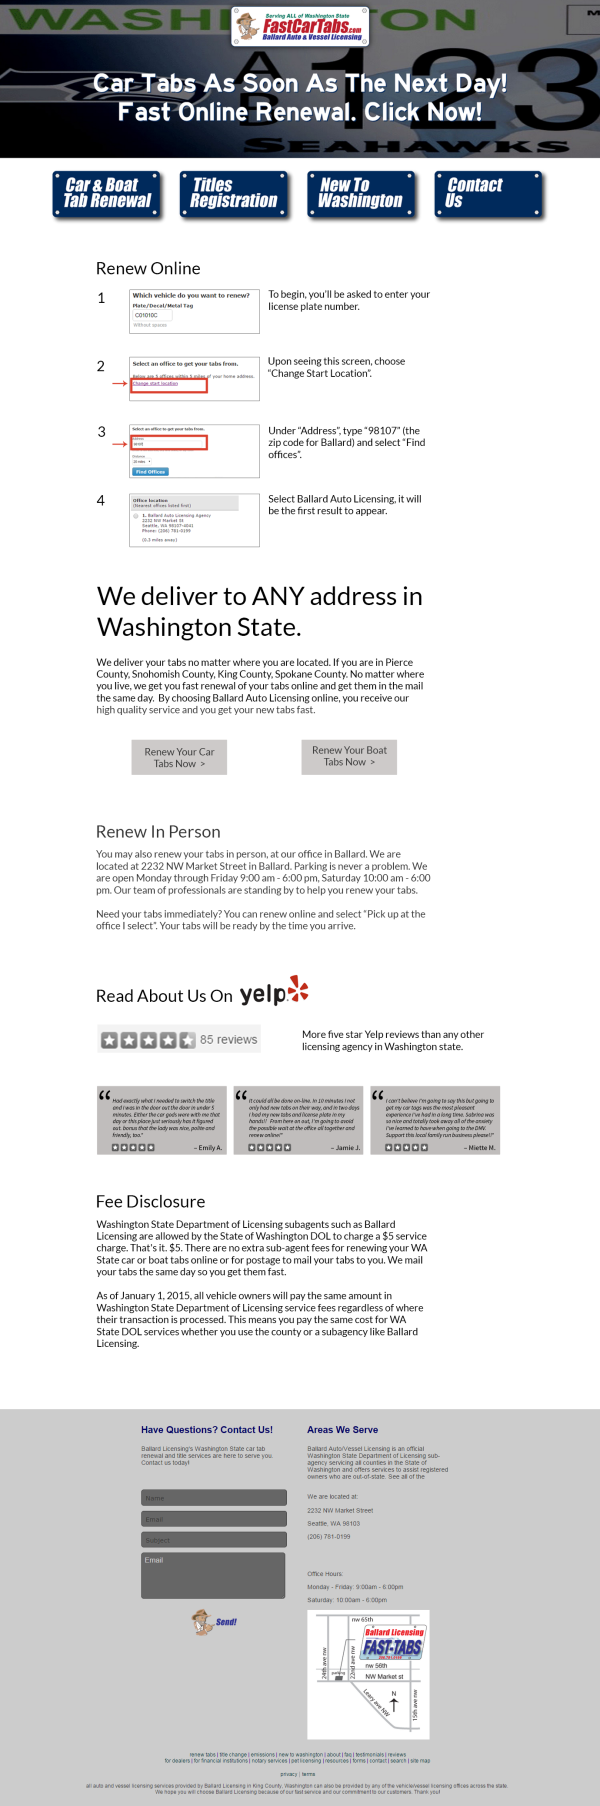 wireframe v2 in web page